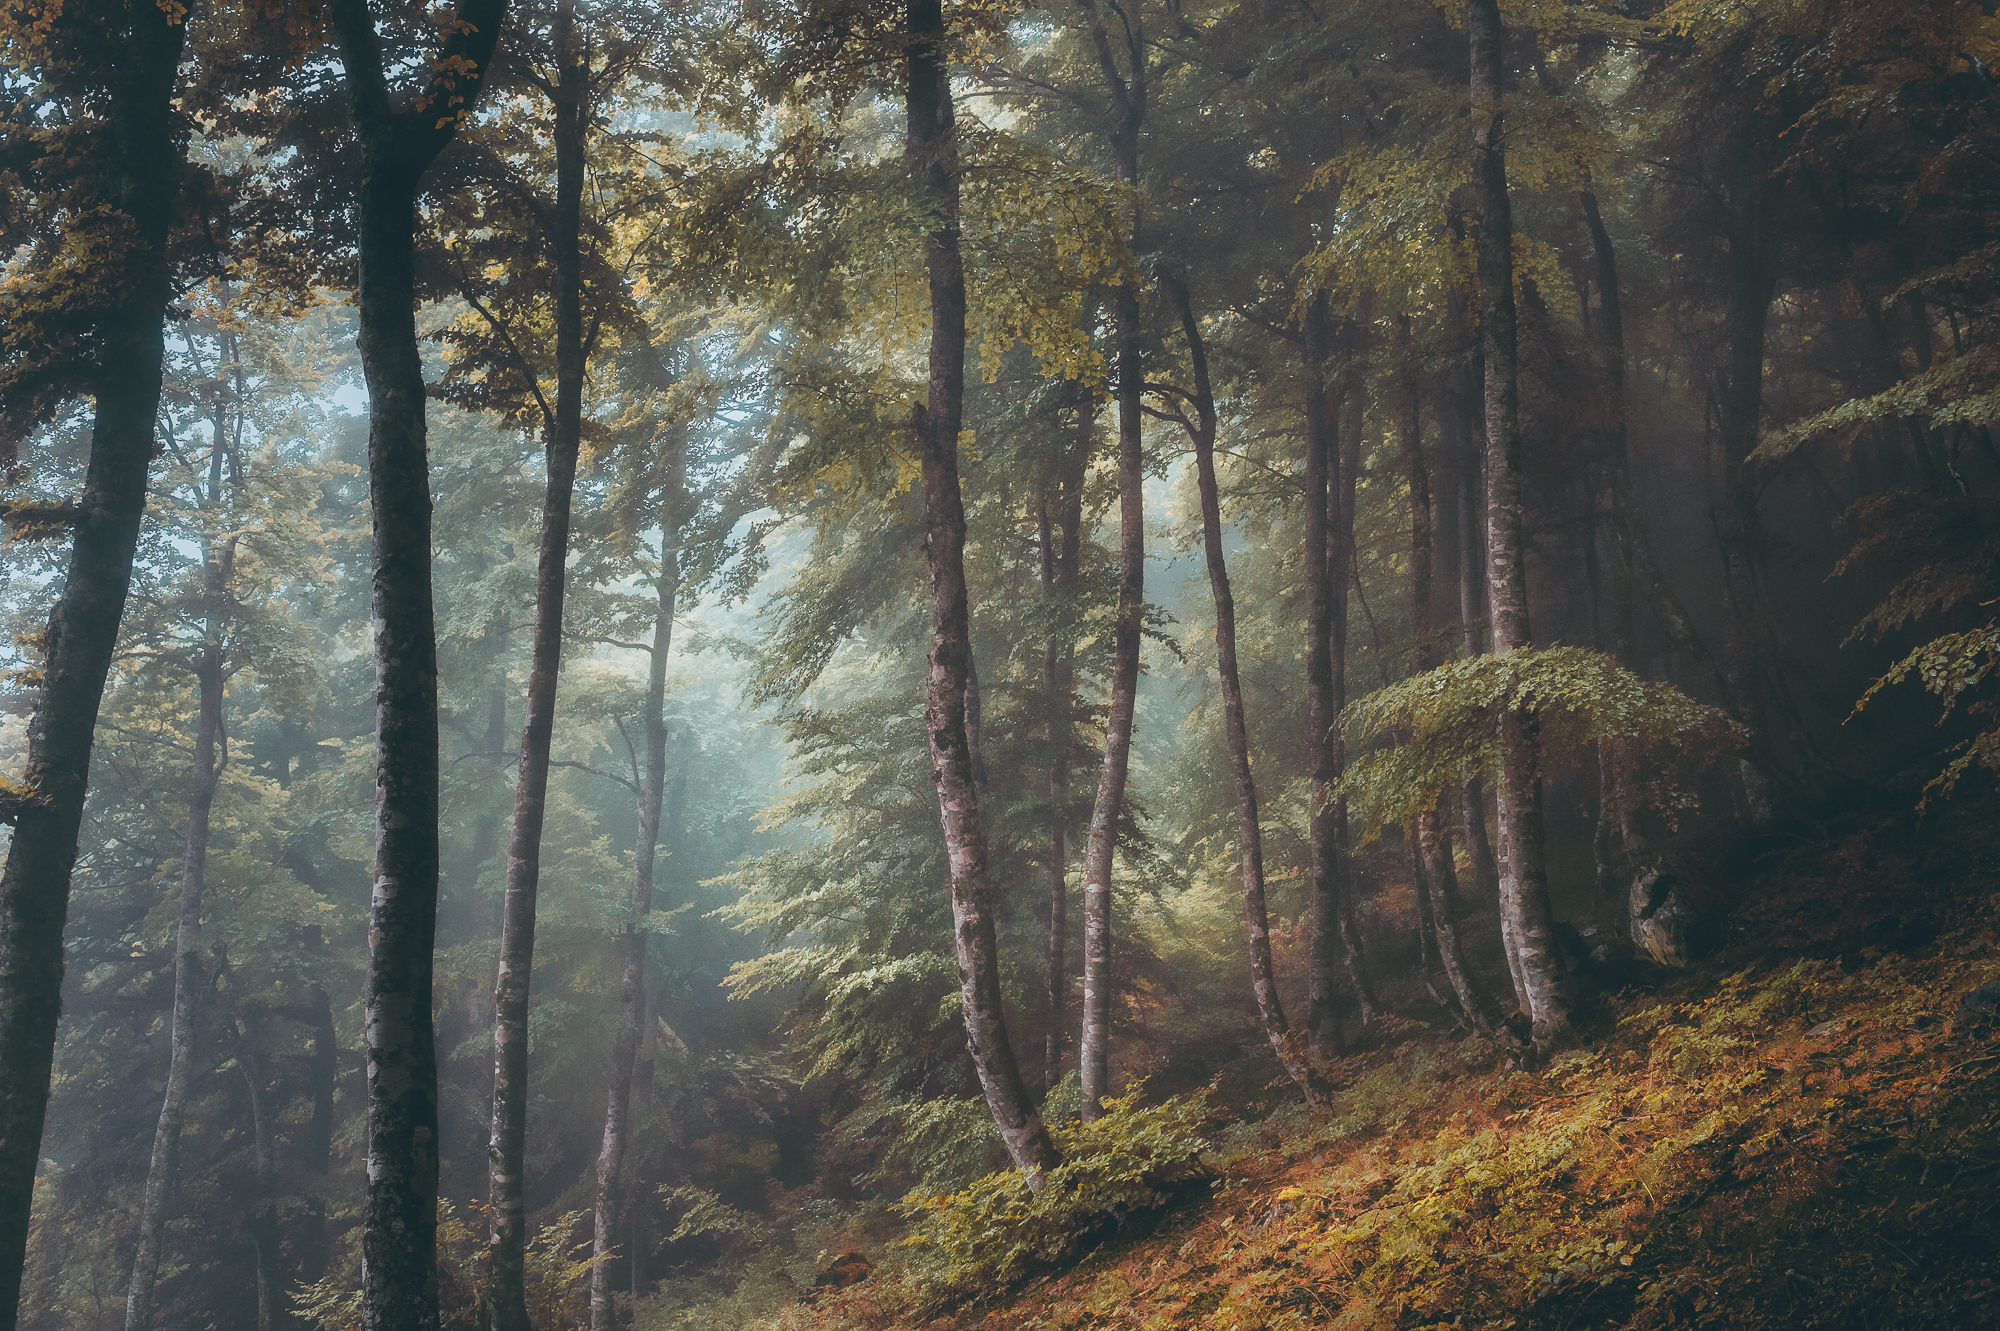 lanscape color photograph of a forest in Pyrénées, France by Yohan Terraza